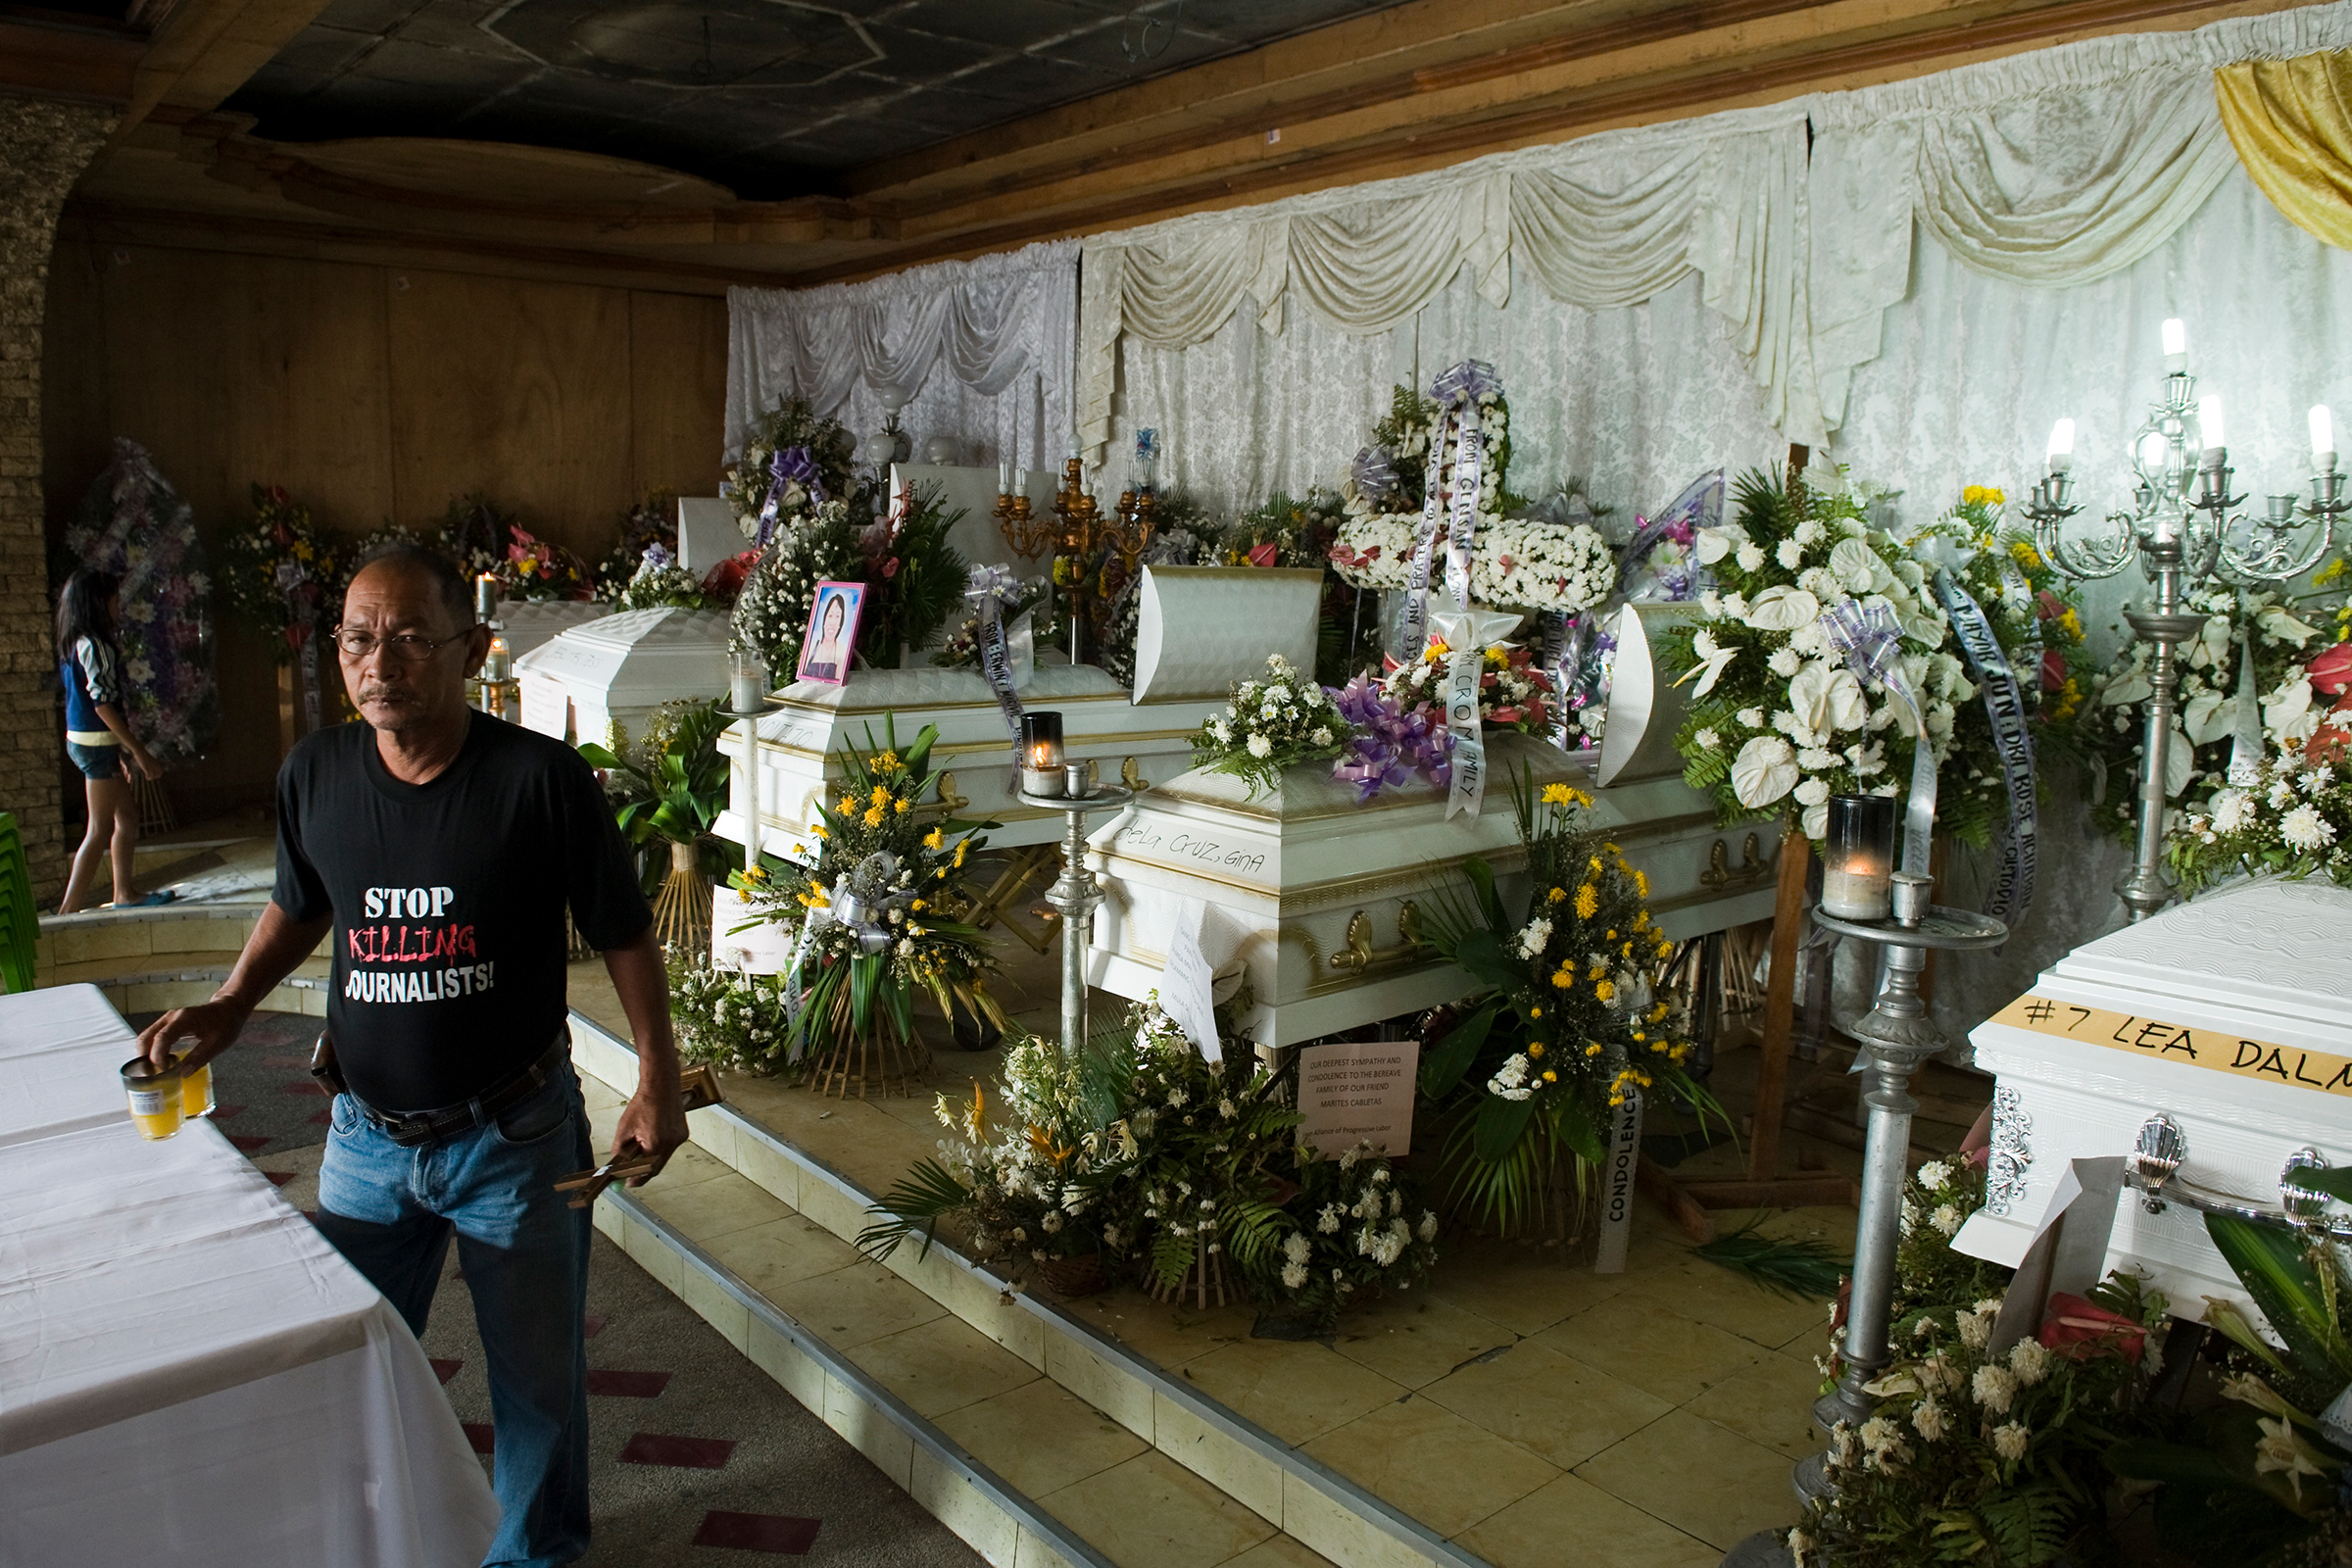 A wake for murdered journalists at the Collado Funeral Home in General Santos City, Mindanao, in 2009.